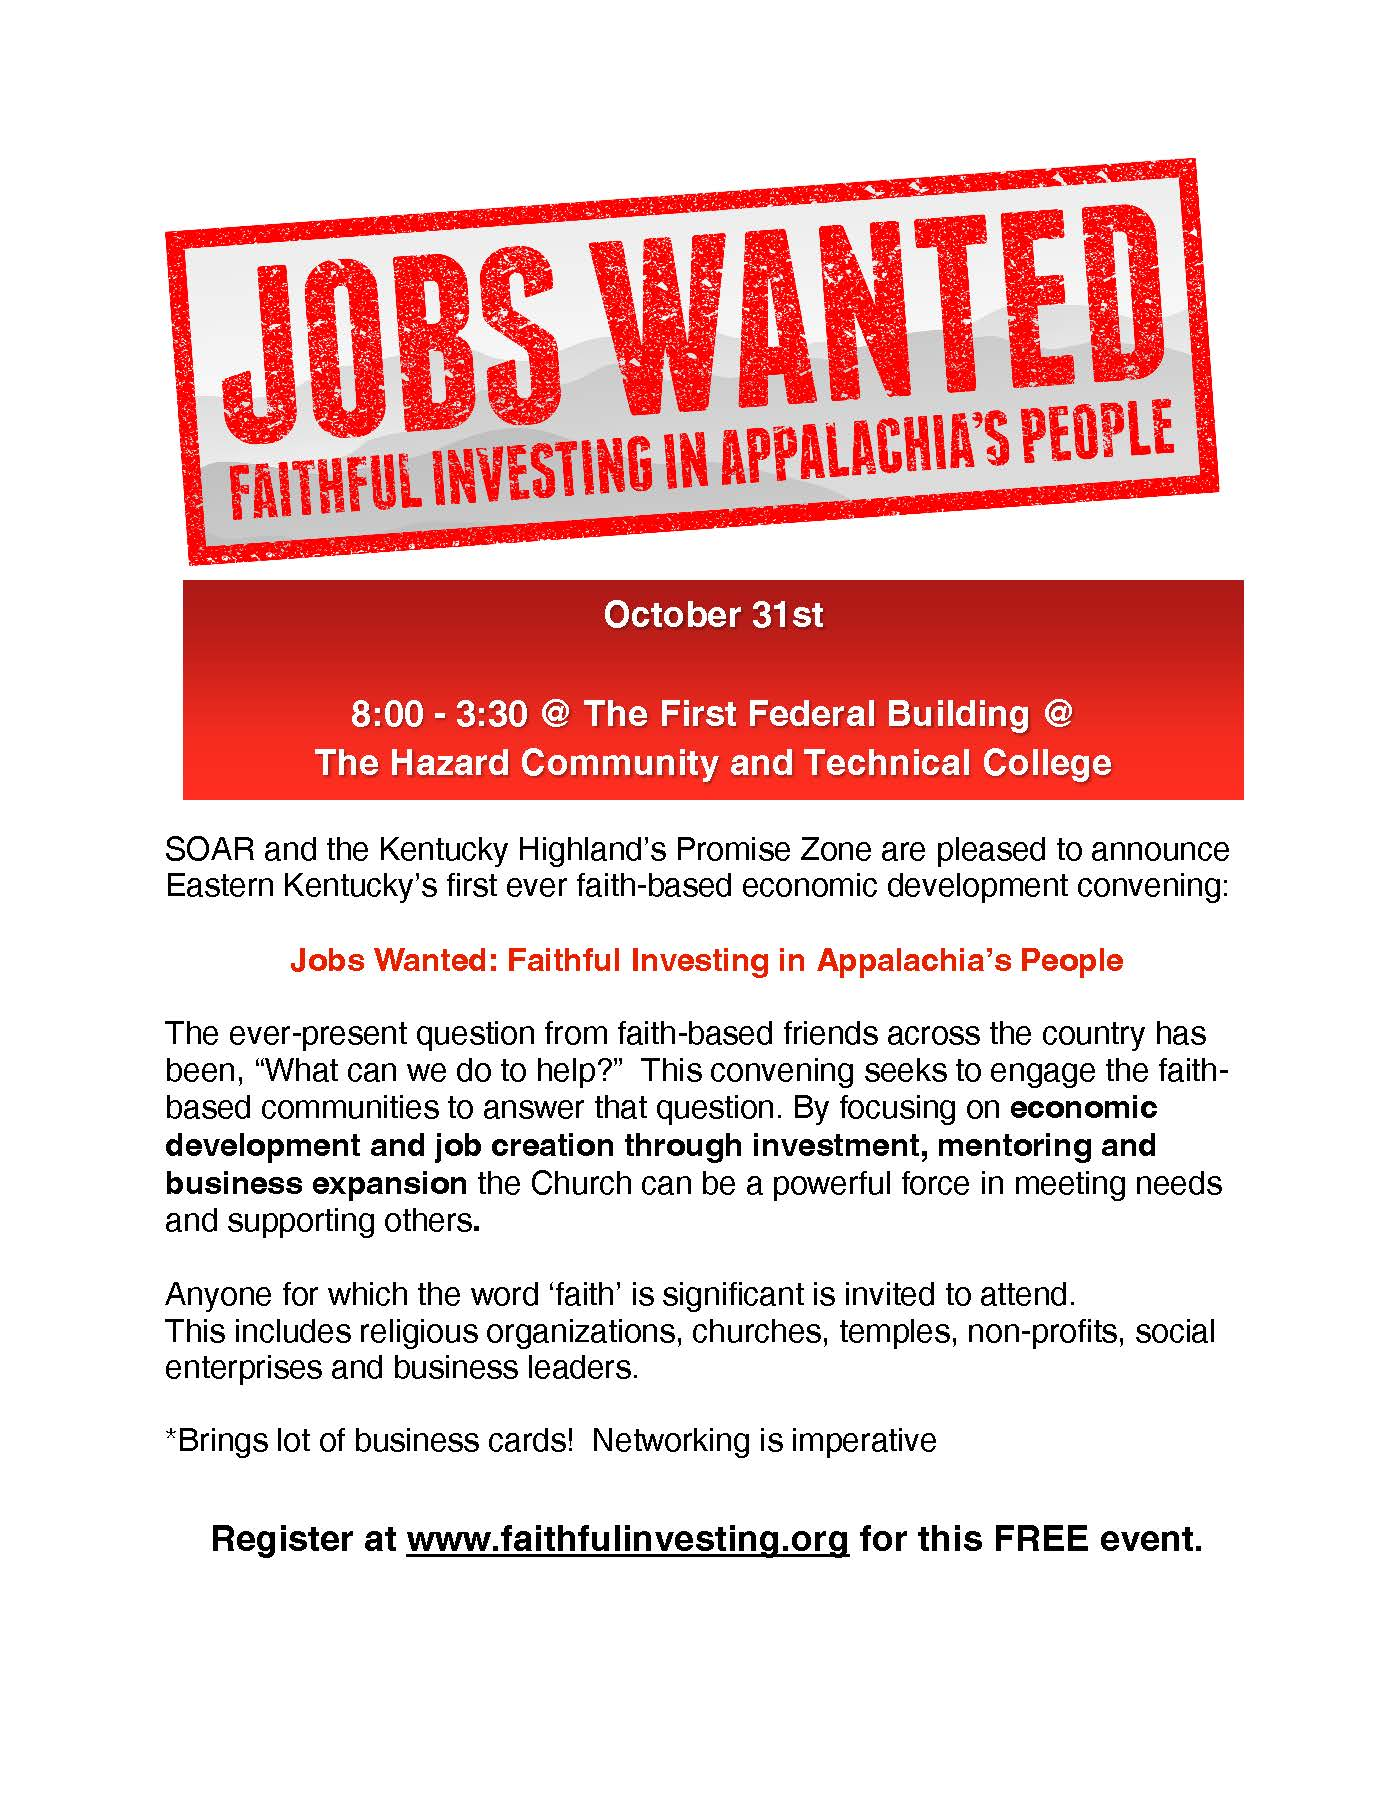 Jobs Wanted Flyer